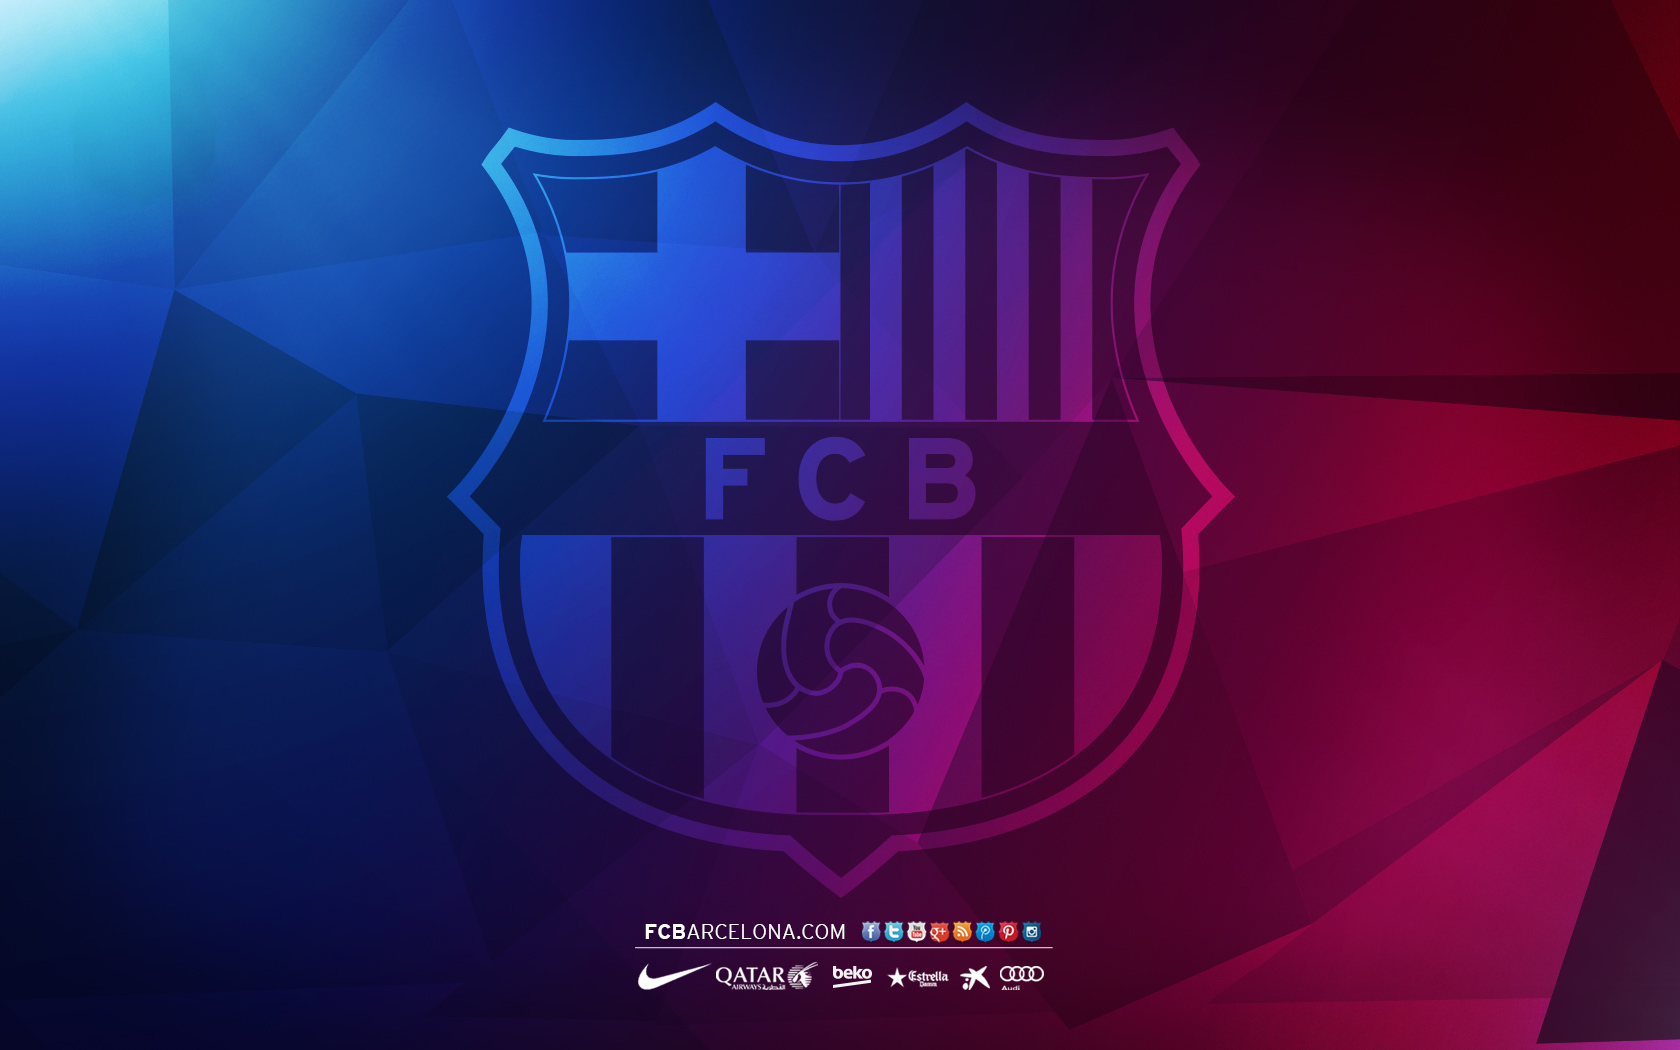 Free Downloads Quotes Wallpaper Mobile Fc Barcelona Wallpapers